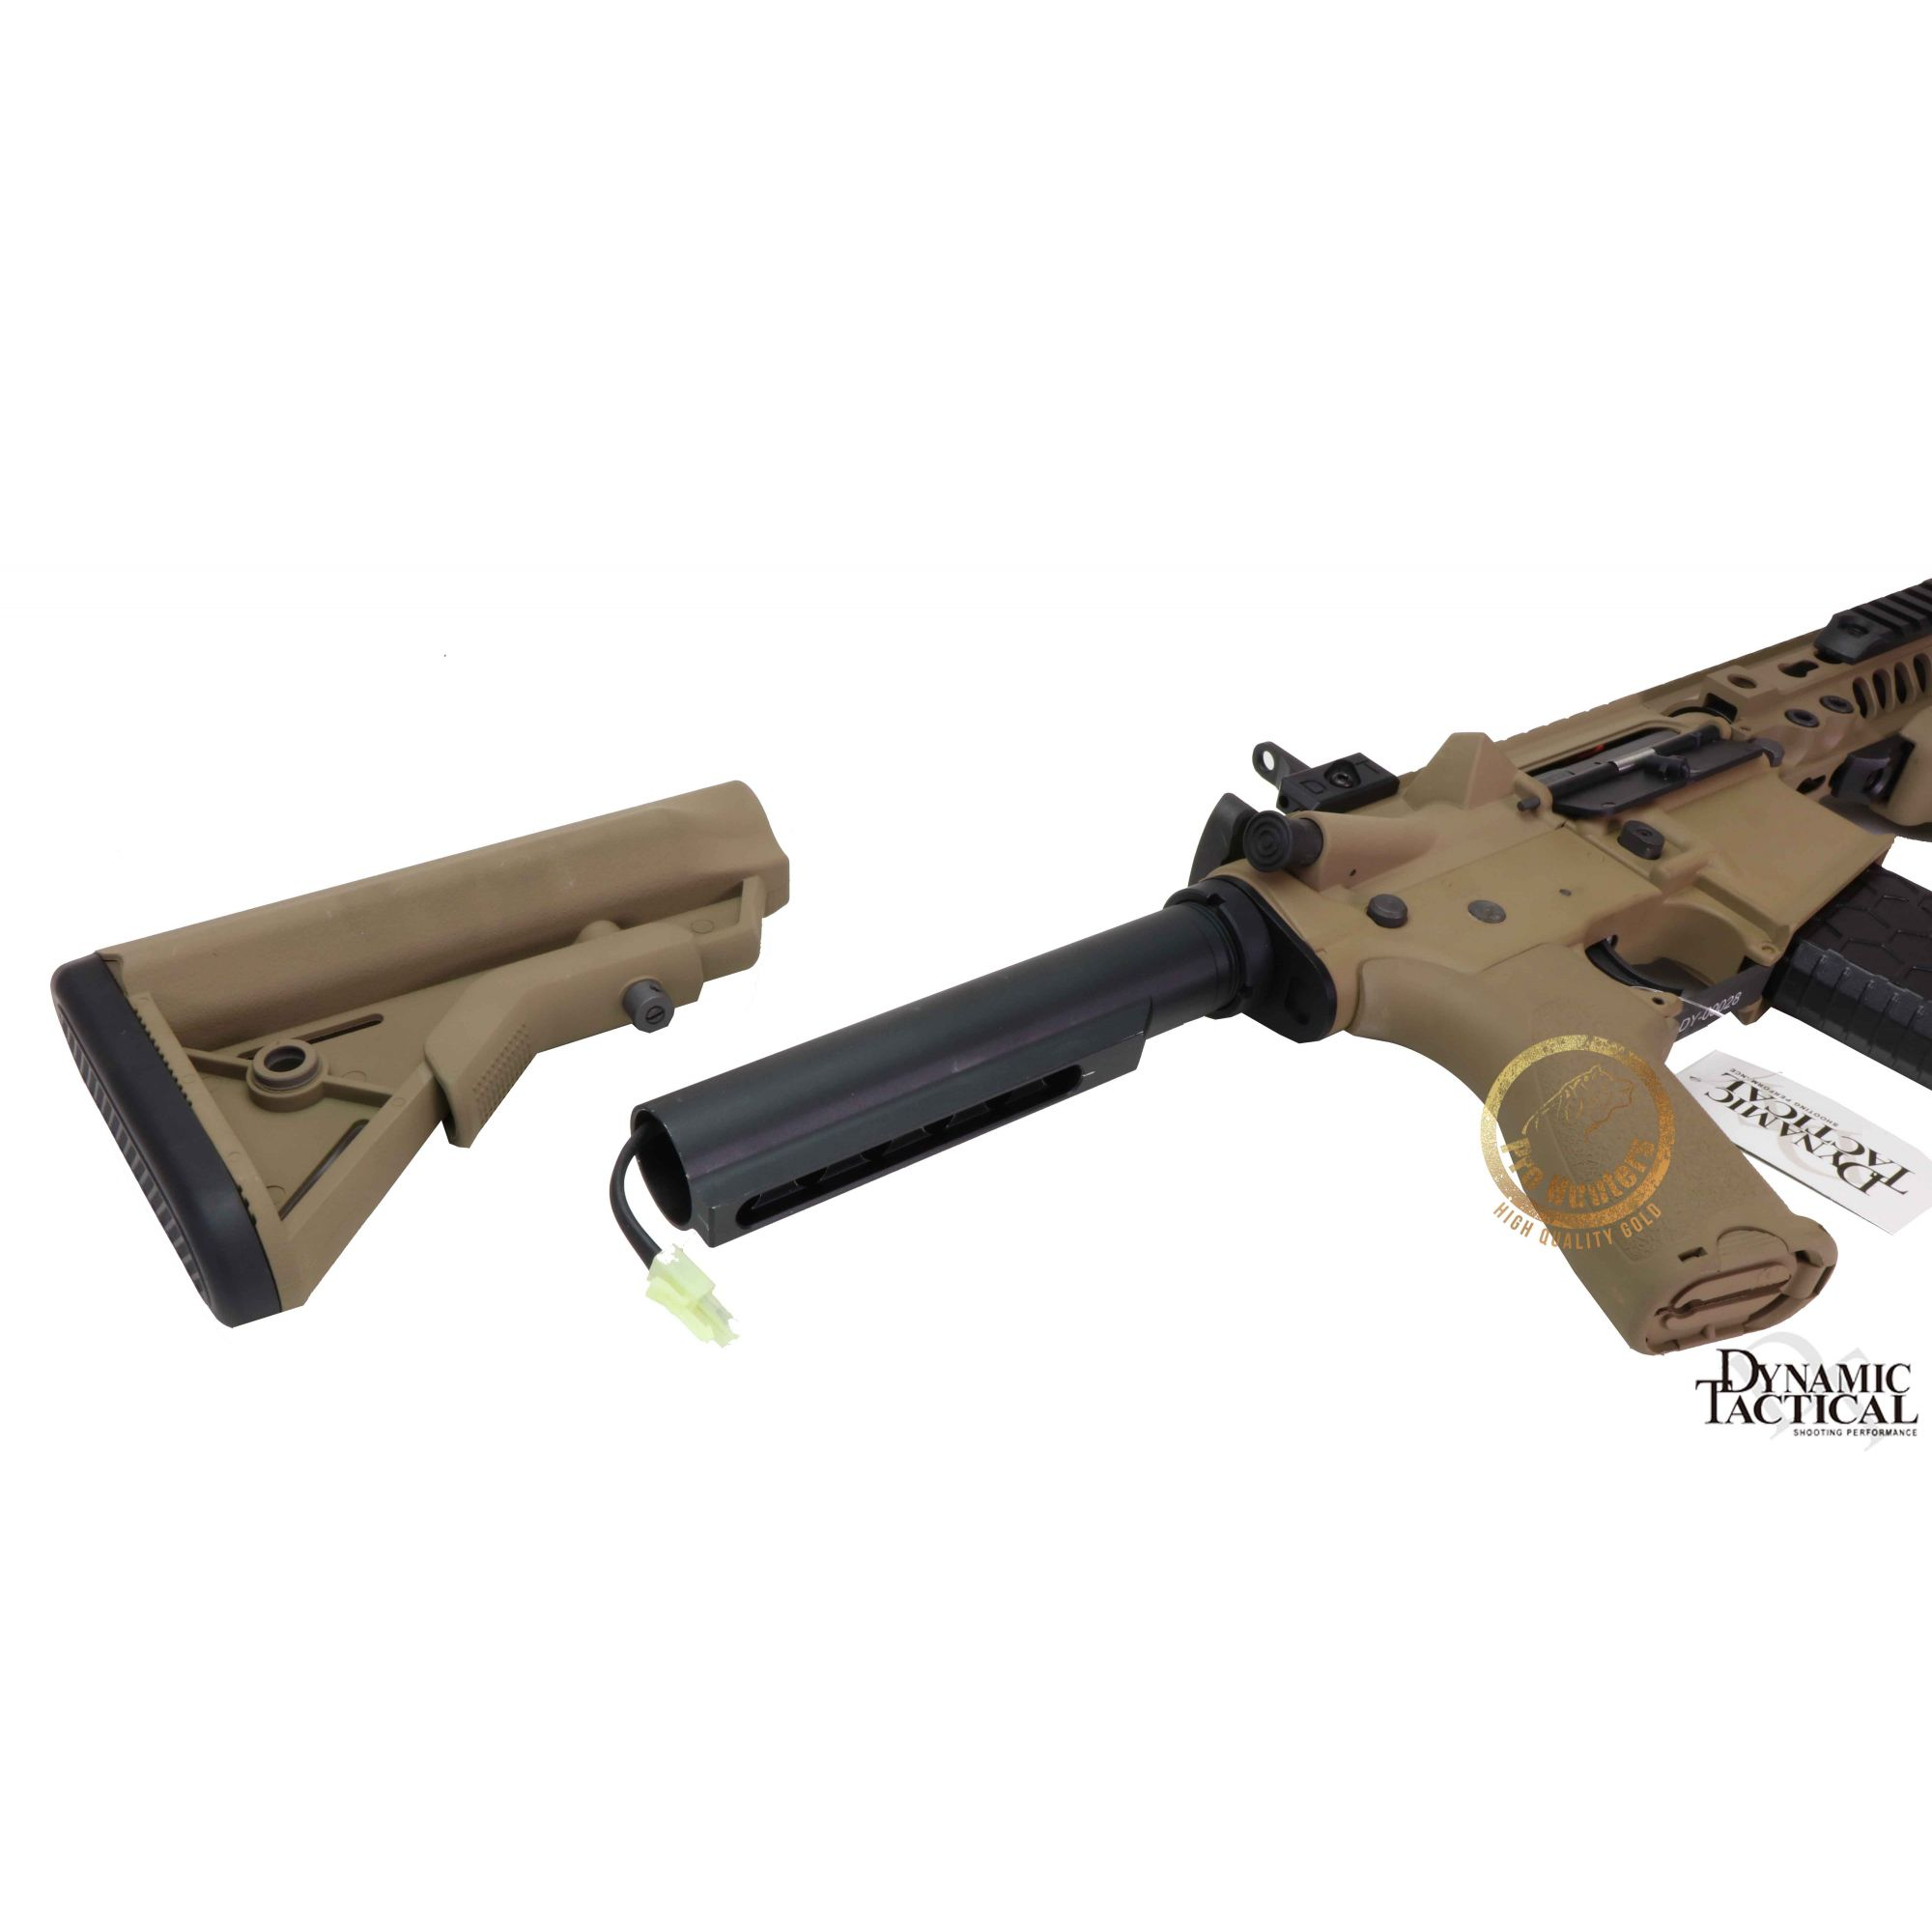 Rifle Airsoft Dytac MK4 SMR 10.5 Pol - Magpul Dark Earth